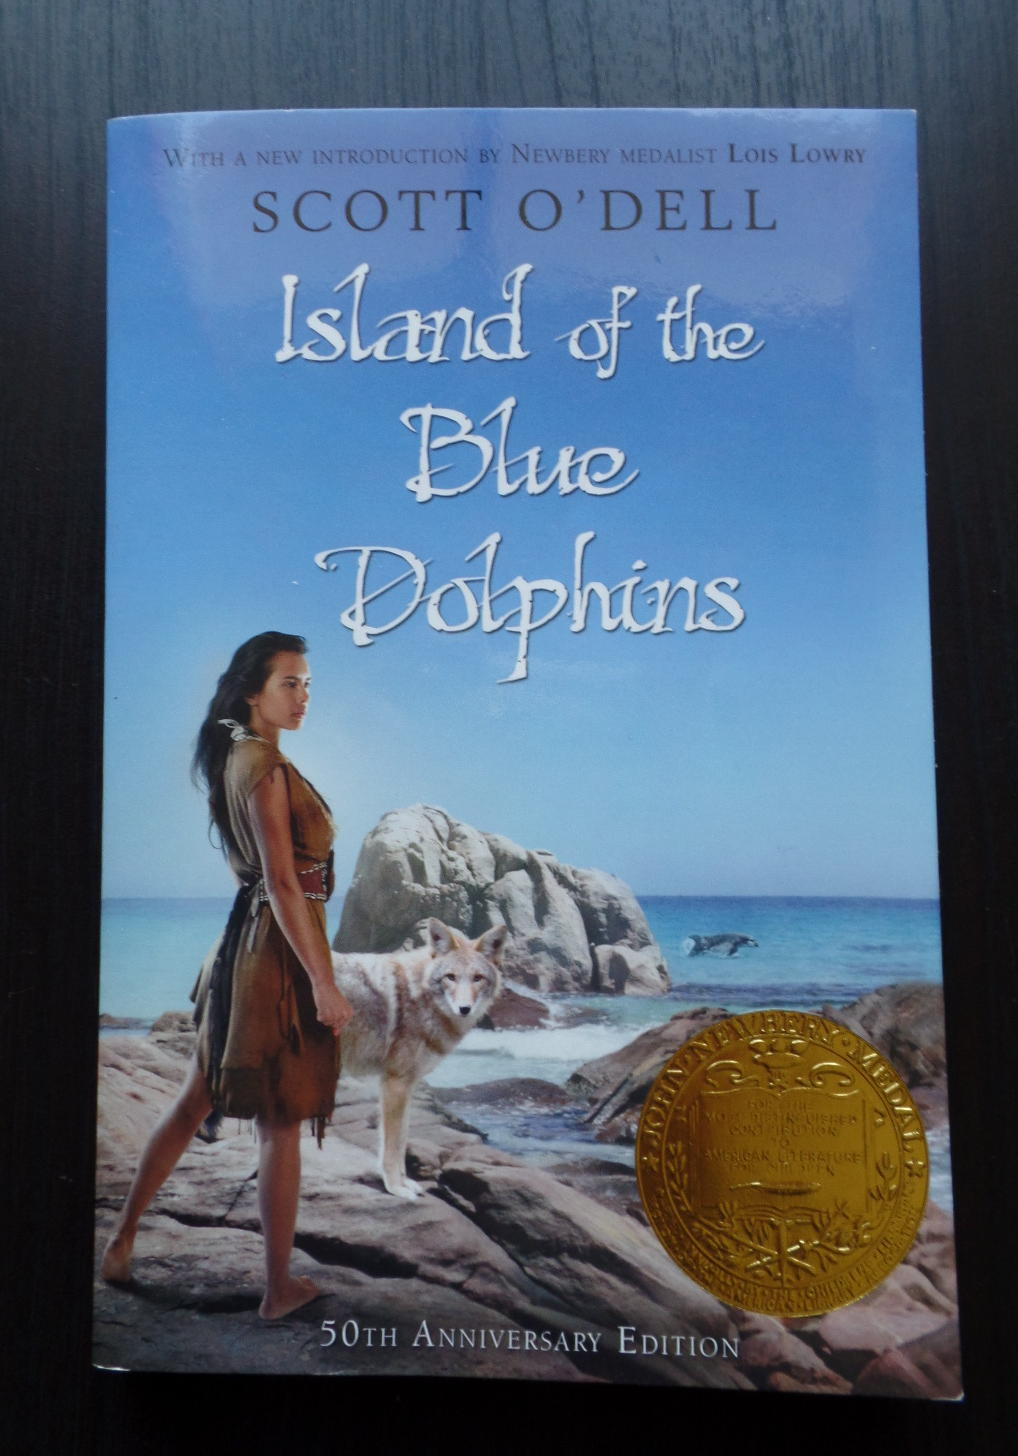 Island of the blue dolphins cover - photo#13